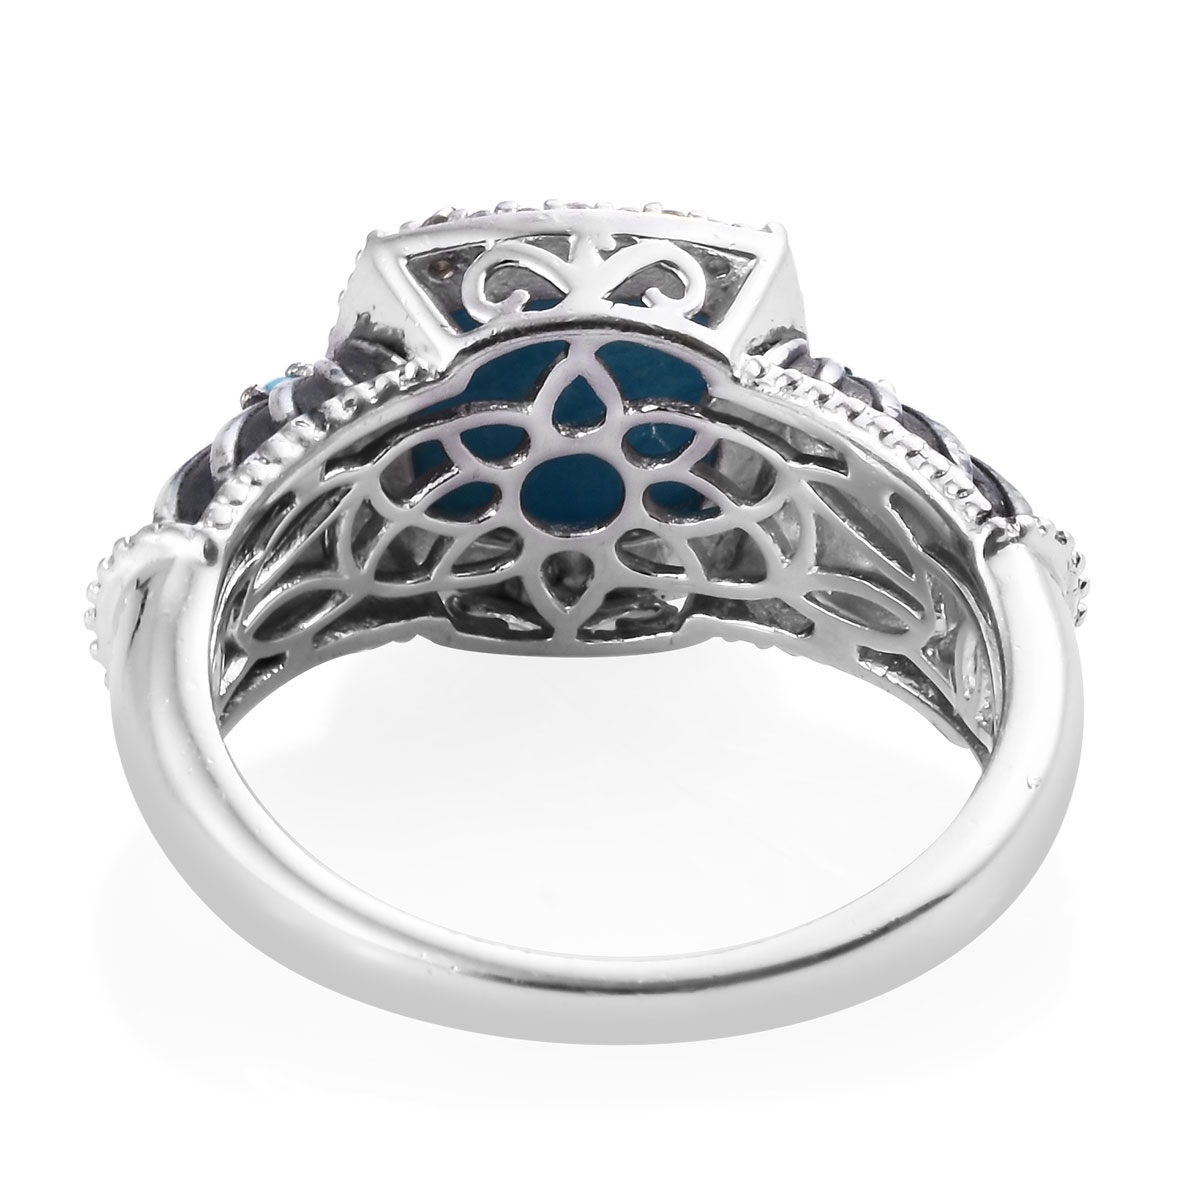 Arizona Sleeping Beauty Turquoise, Cambodian Zircon Ring in Platinum Over Sterling Silver (Size 8.0) 4.12 ctw